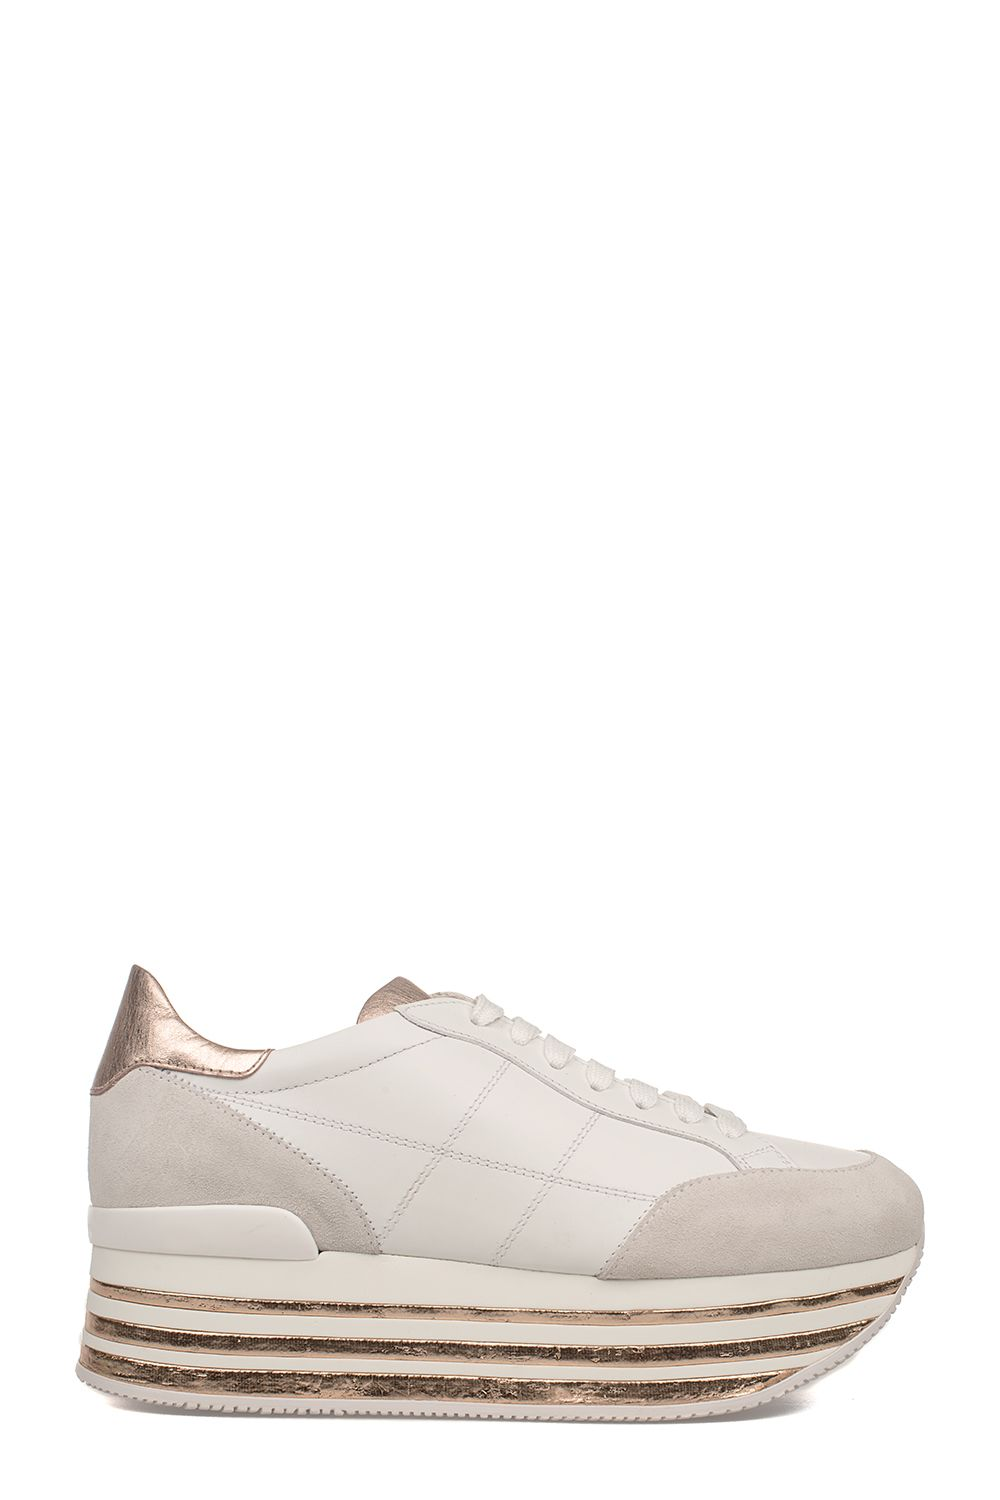 Hogan Pink H349 Maxi Wedge Sneakers Cheap Sale With Credit Card Buy Cheap High Quality Explore Cheap Sale Good Selling gqkkf